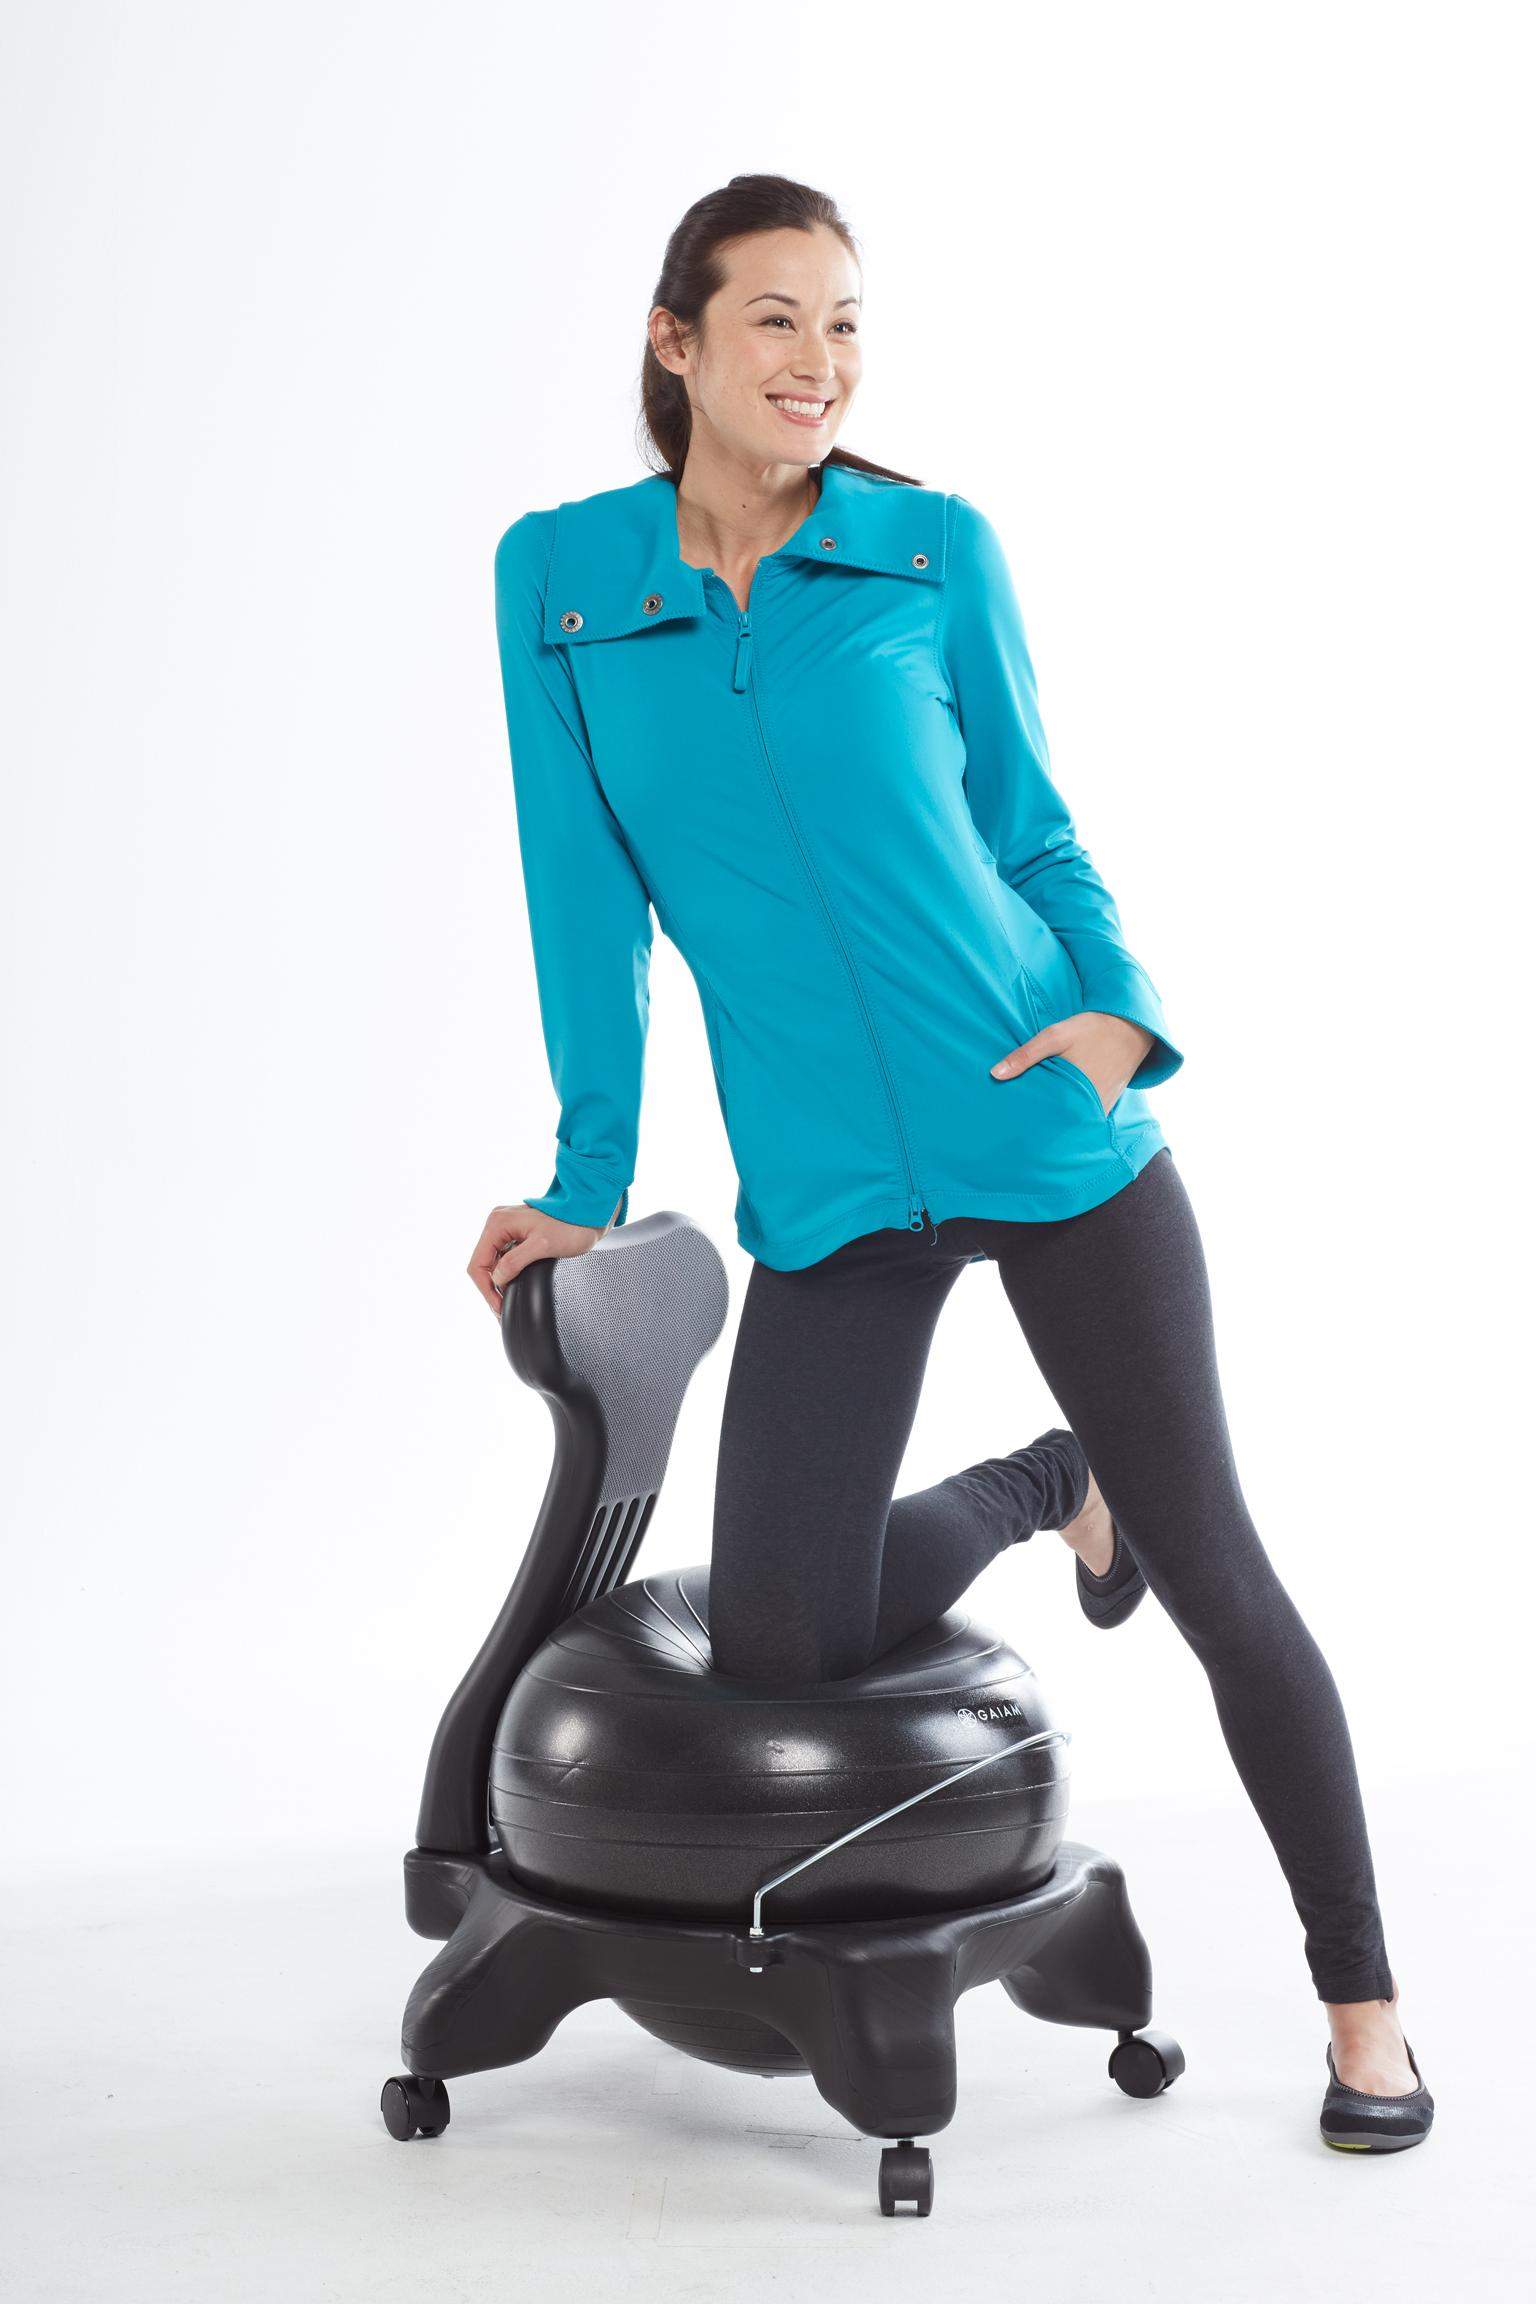 gaiam balance ball chair exercises ikea stretch covers amazon black exercise